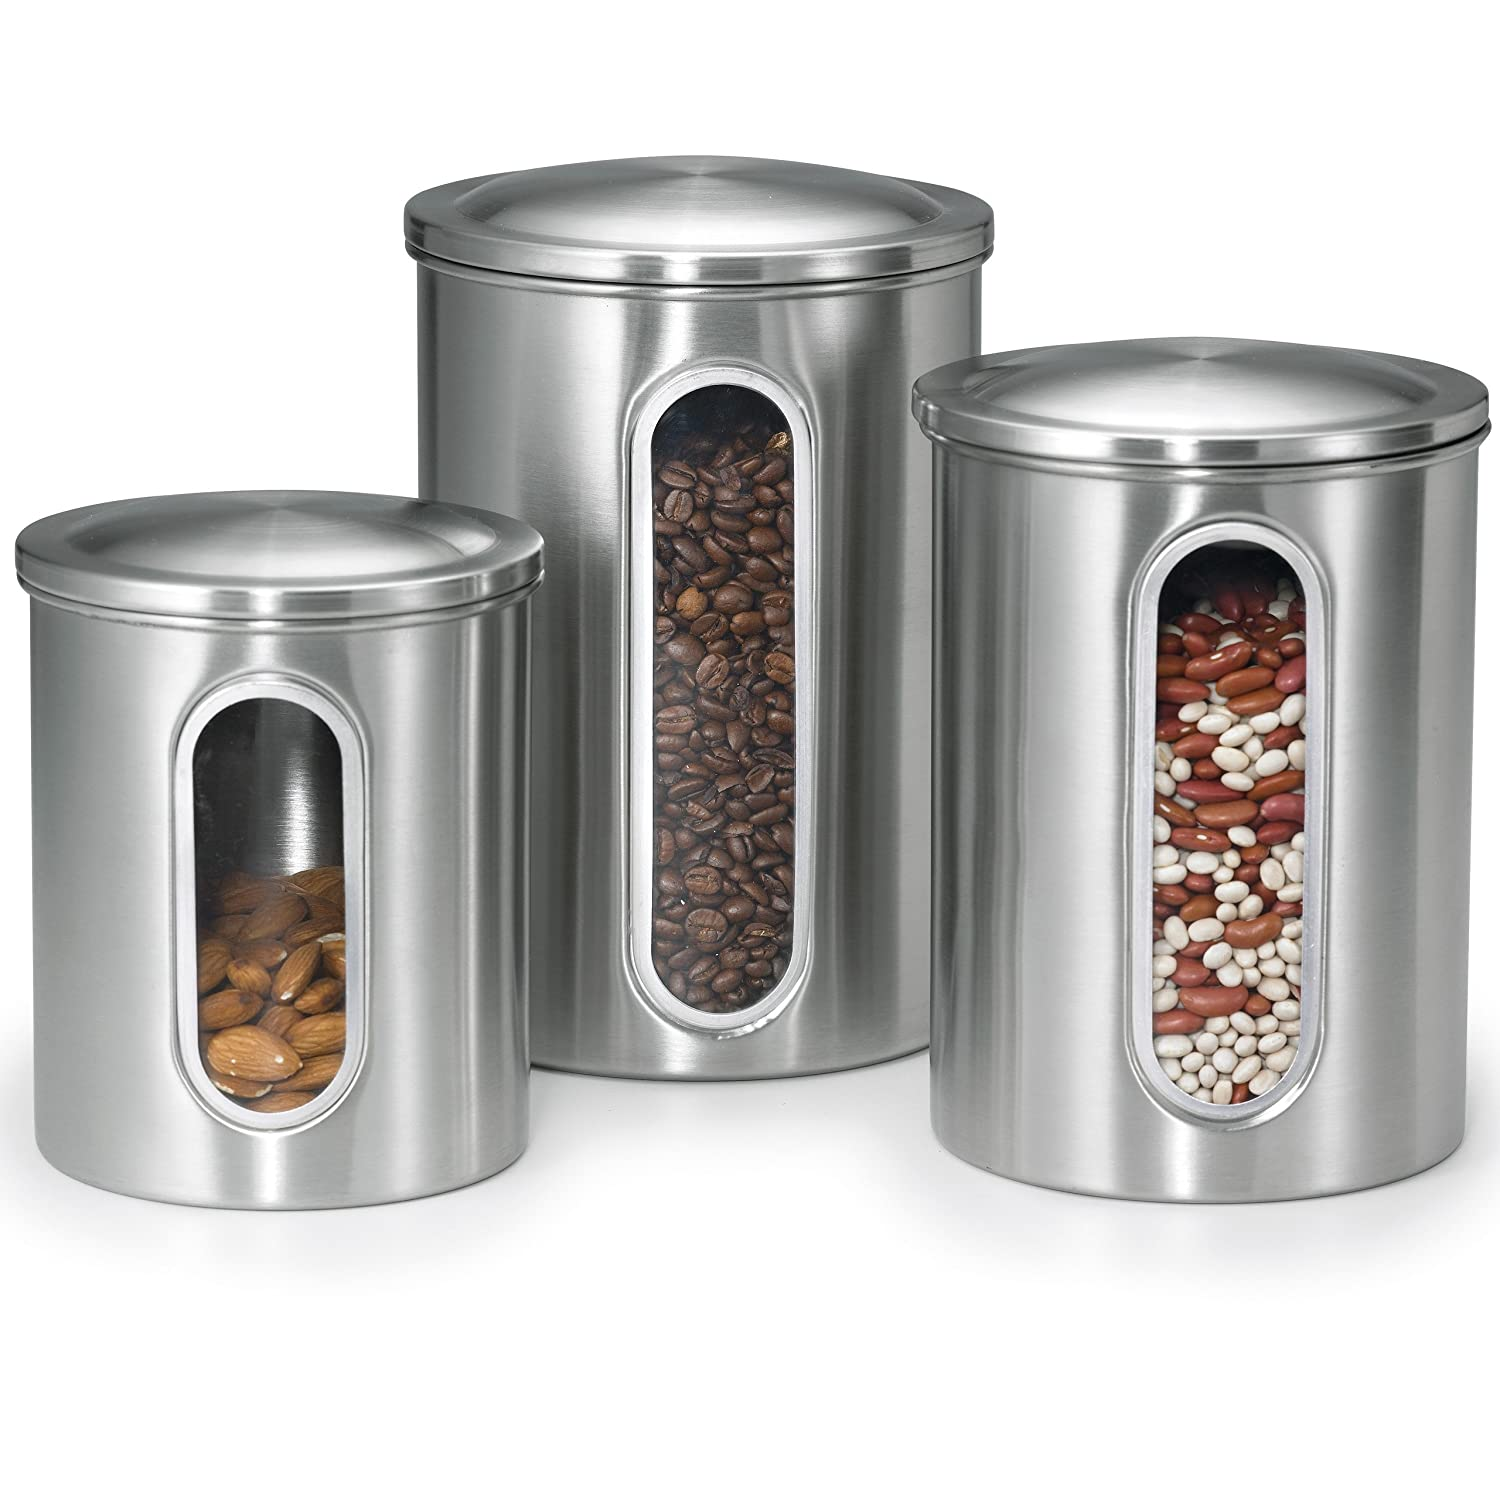 Designer Kitchen Canister Sets Amazoncom Polder Stainless Steel Window Canister Set With Lids